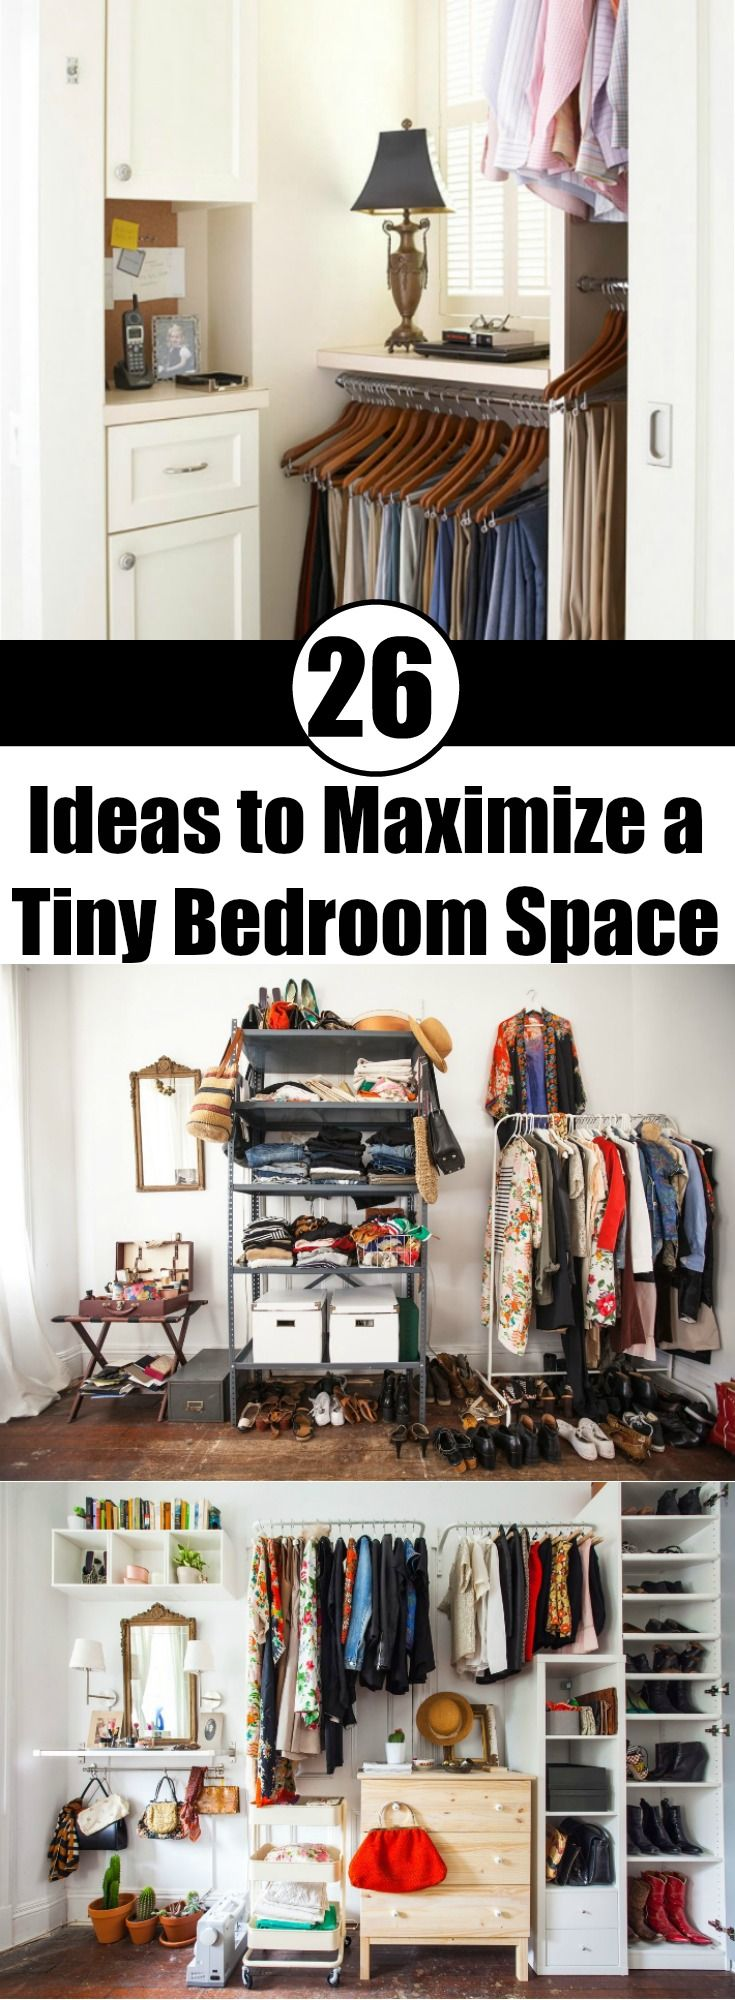 26 Ideas to Maximize a Tiny Bedroom Space